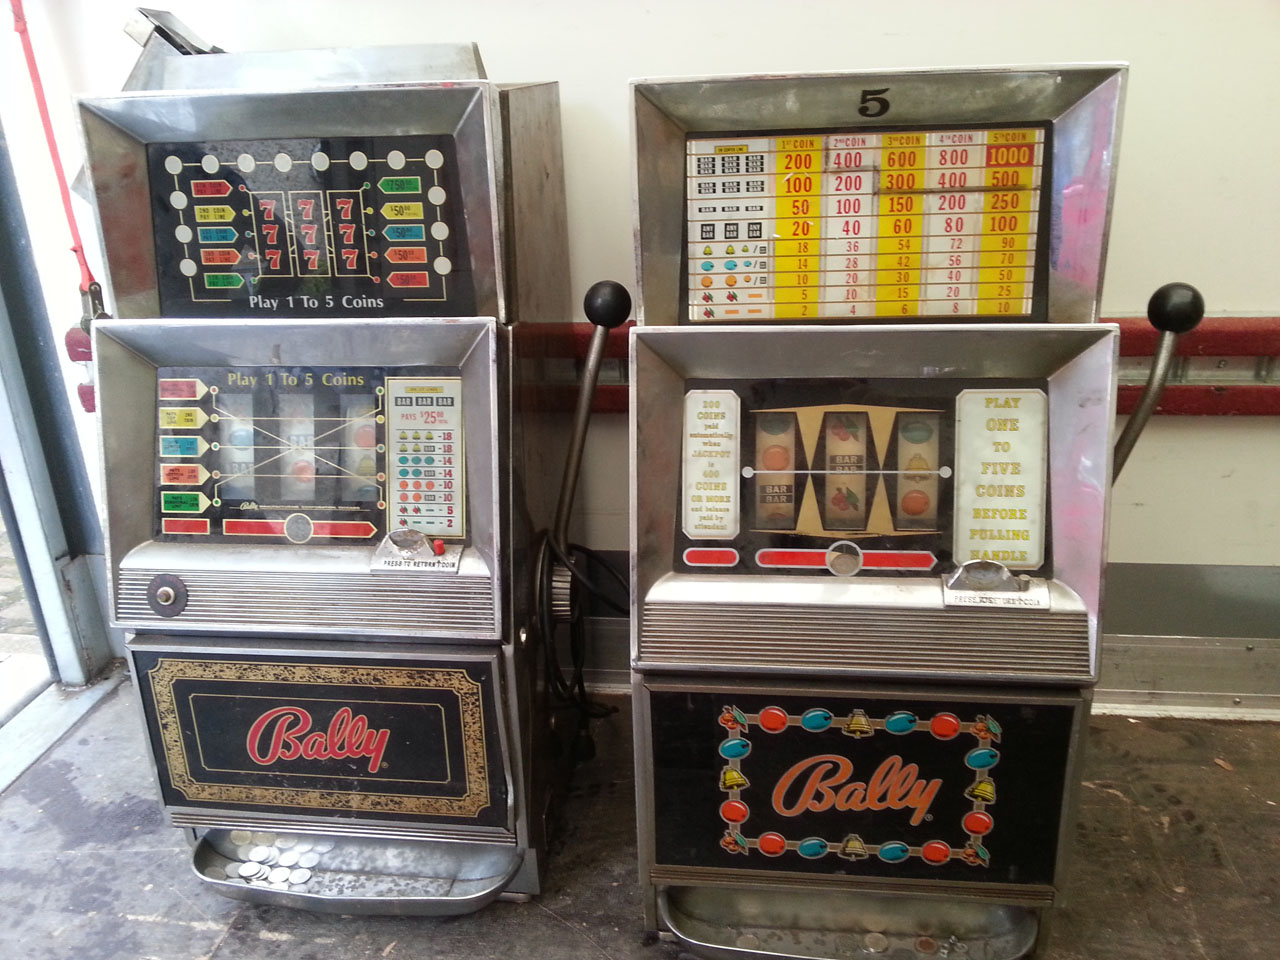 Bally slot machine models